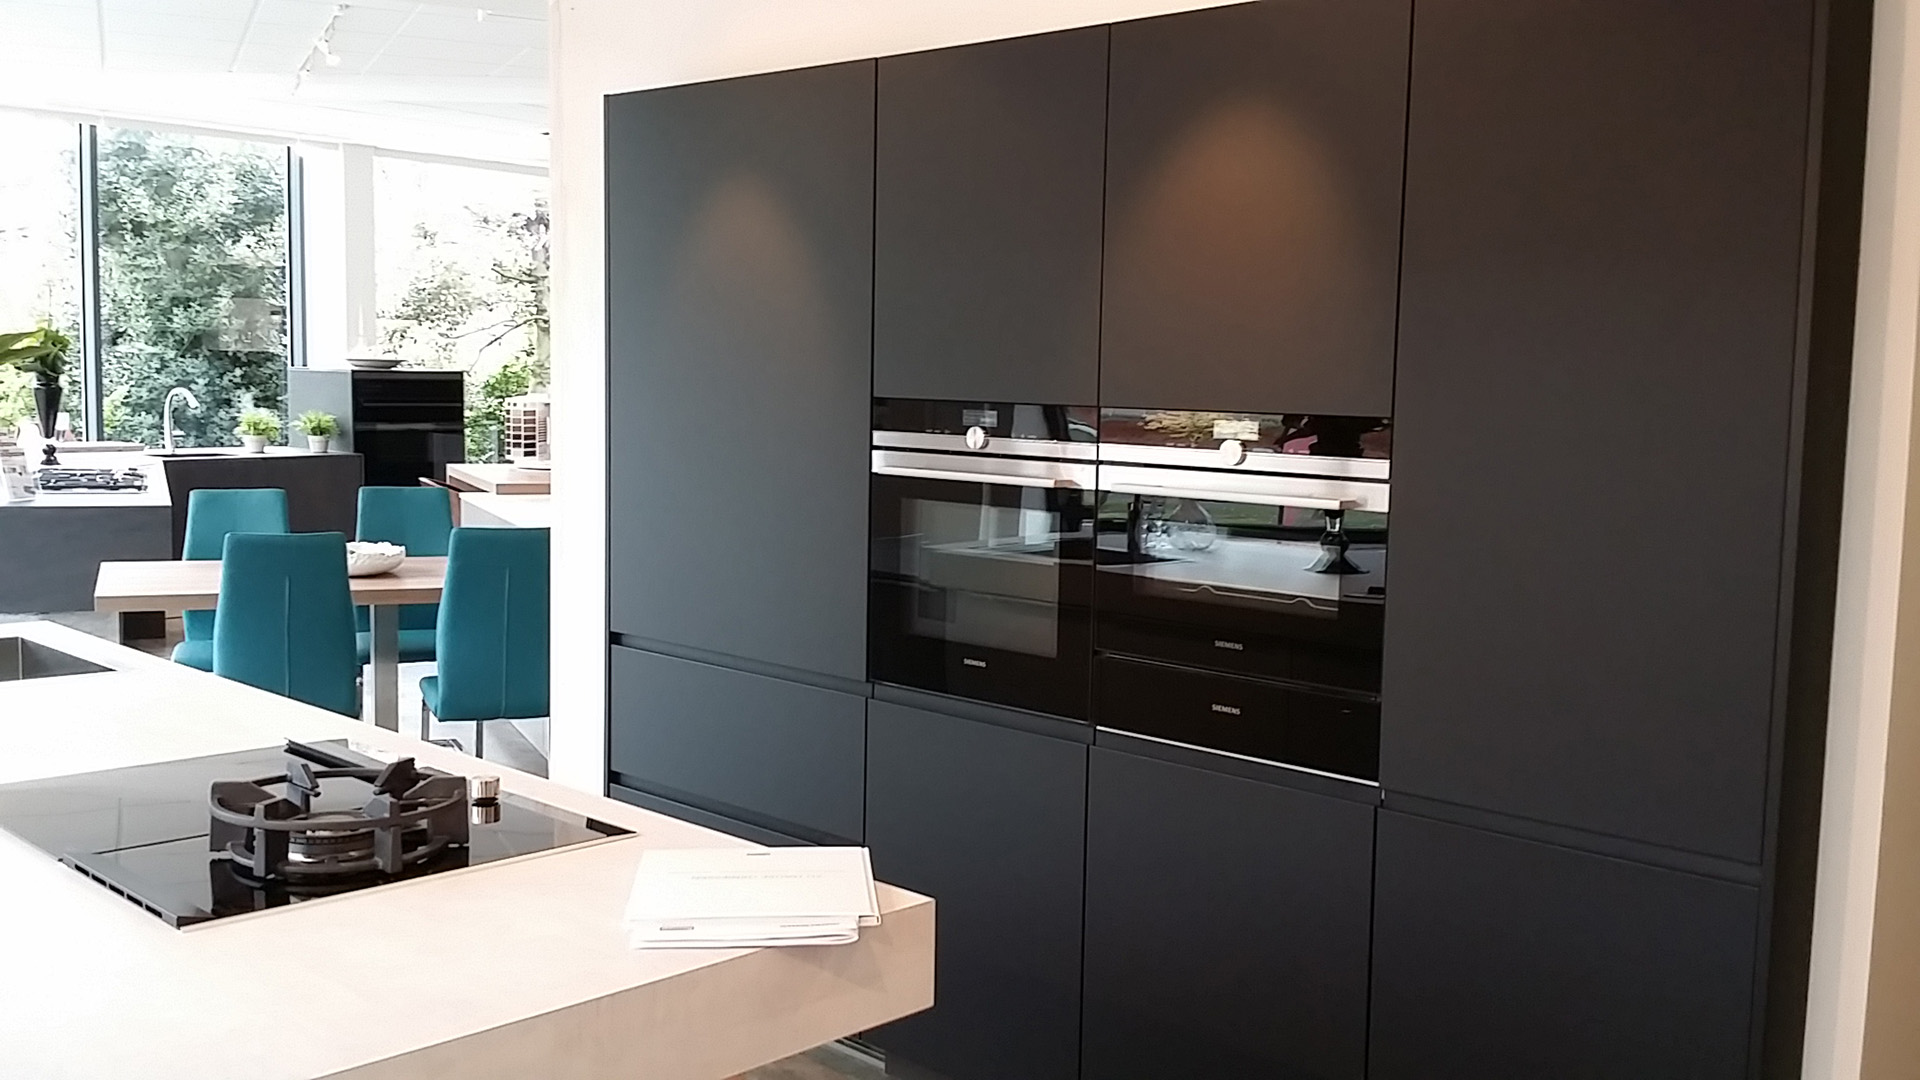 Tinos and Cliff by Rempp with Fenix anti-fingerprint black laminate kitchen